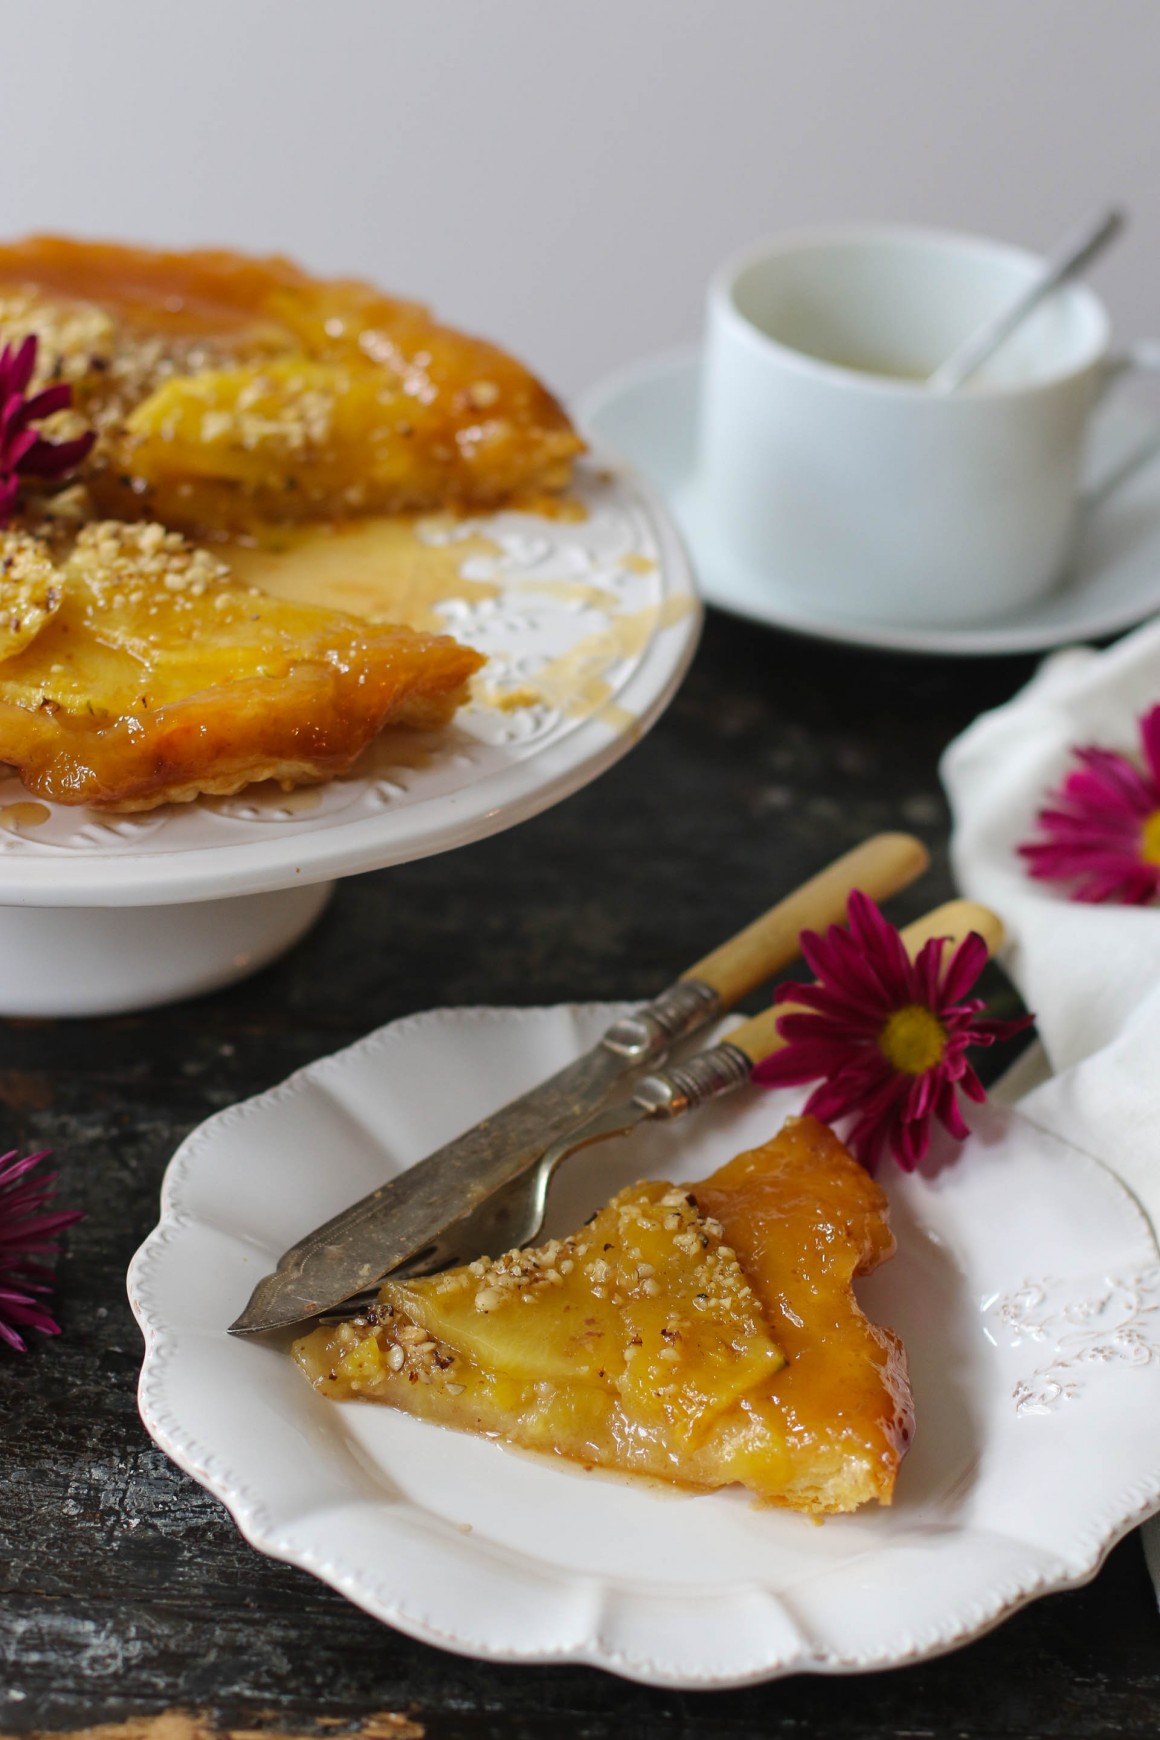 tarte tatine all'ananas